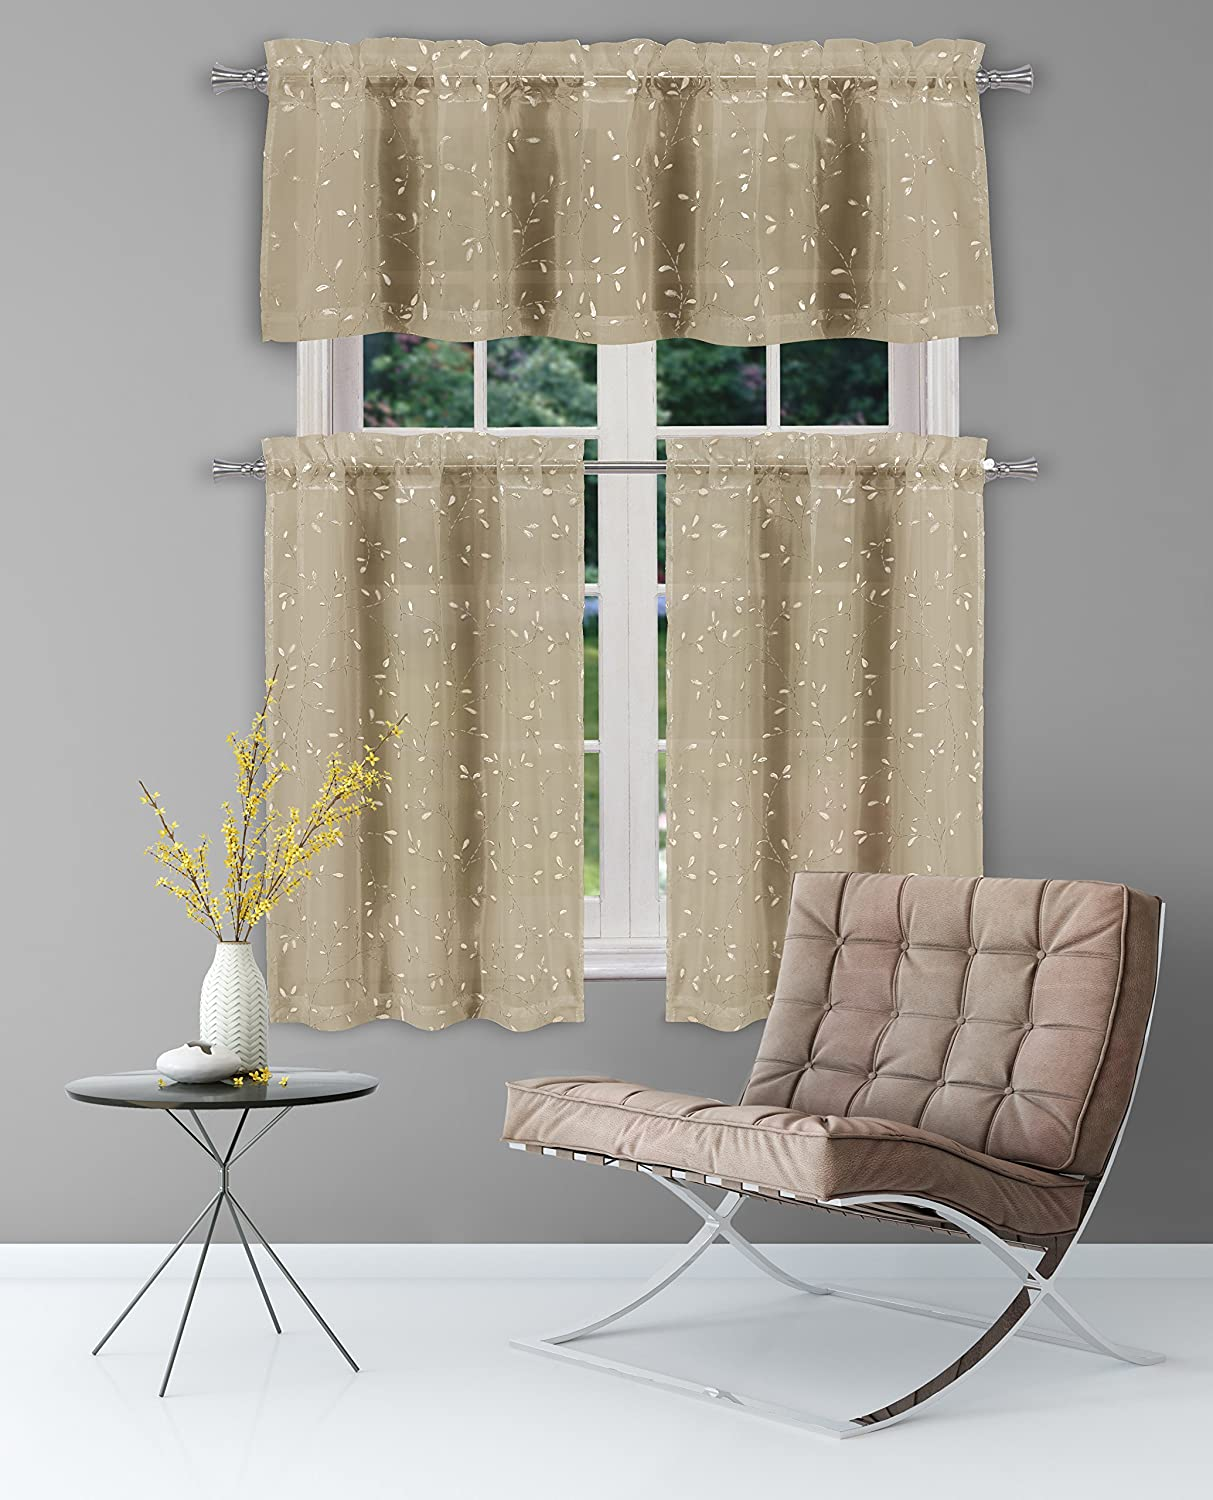 Duck River Textiles - Floral Kitchen Window Curtain Set Mistie, 2 Tiers 28 X 36 inch | 1 Valance 56 X 15 inch, Taupe and Gold MIKTG=12 /14155+